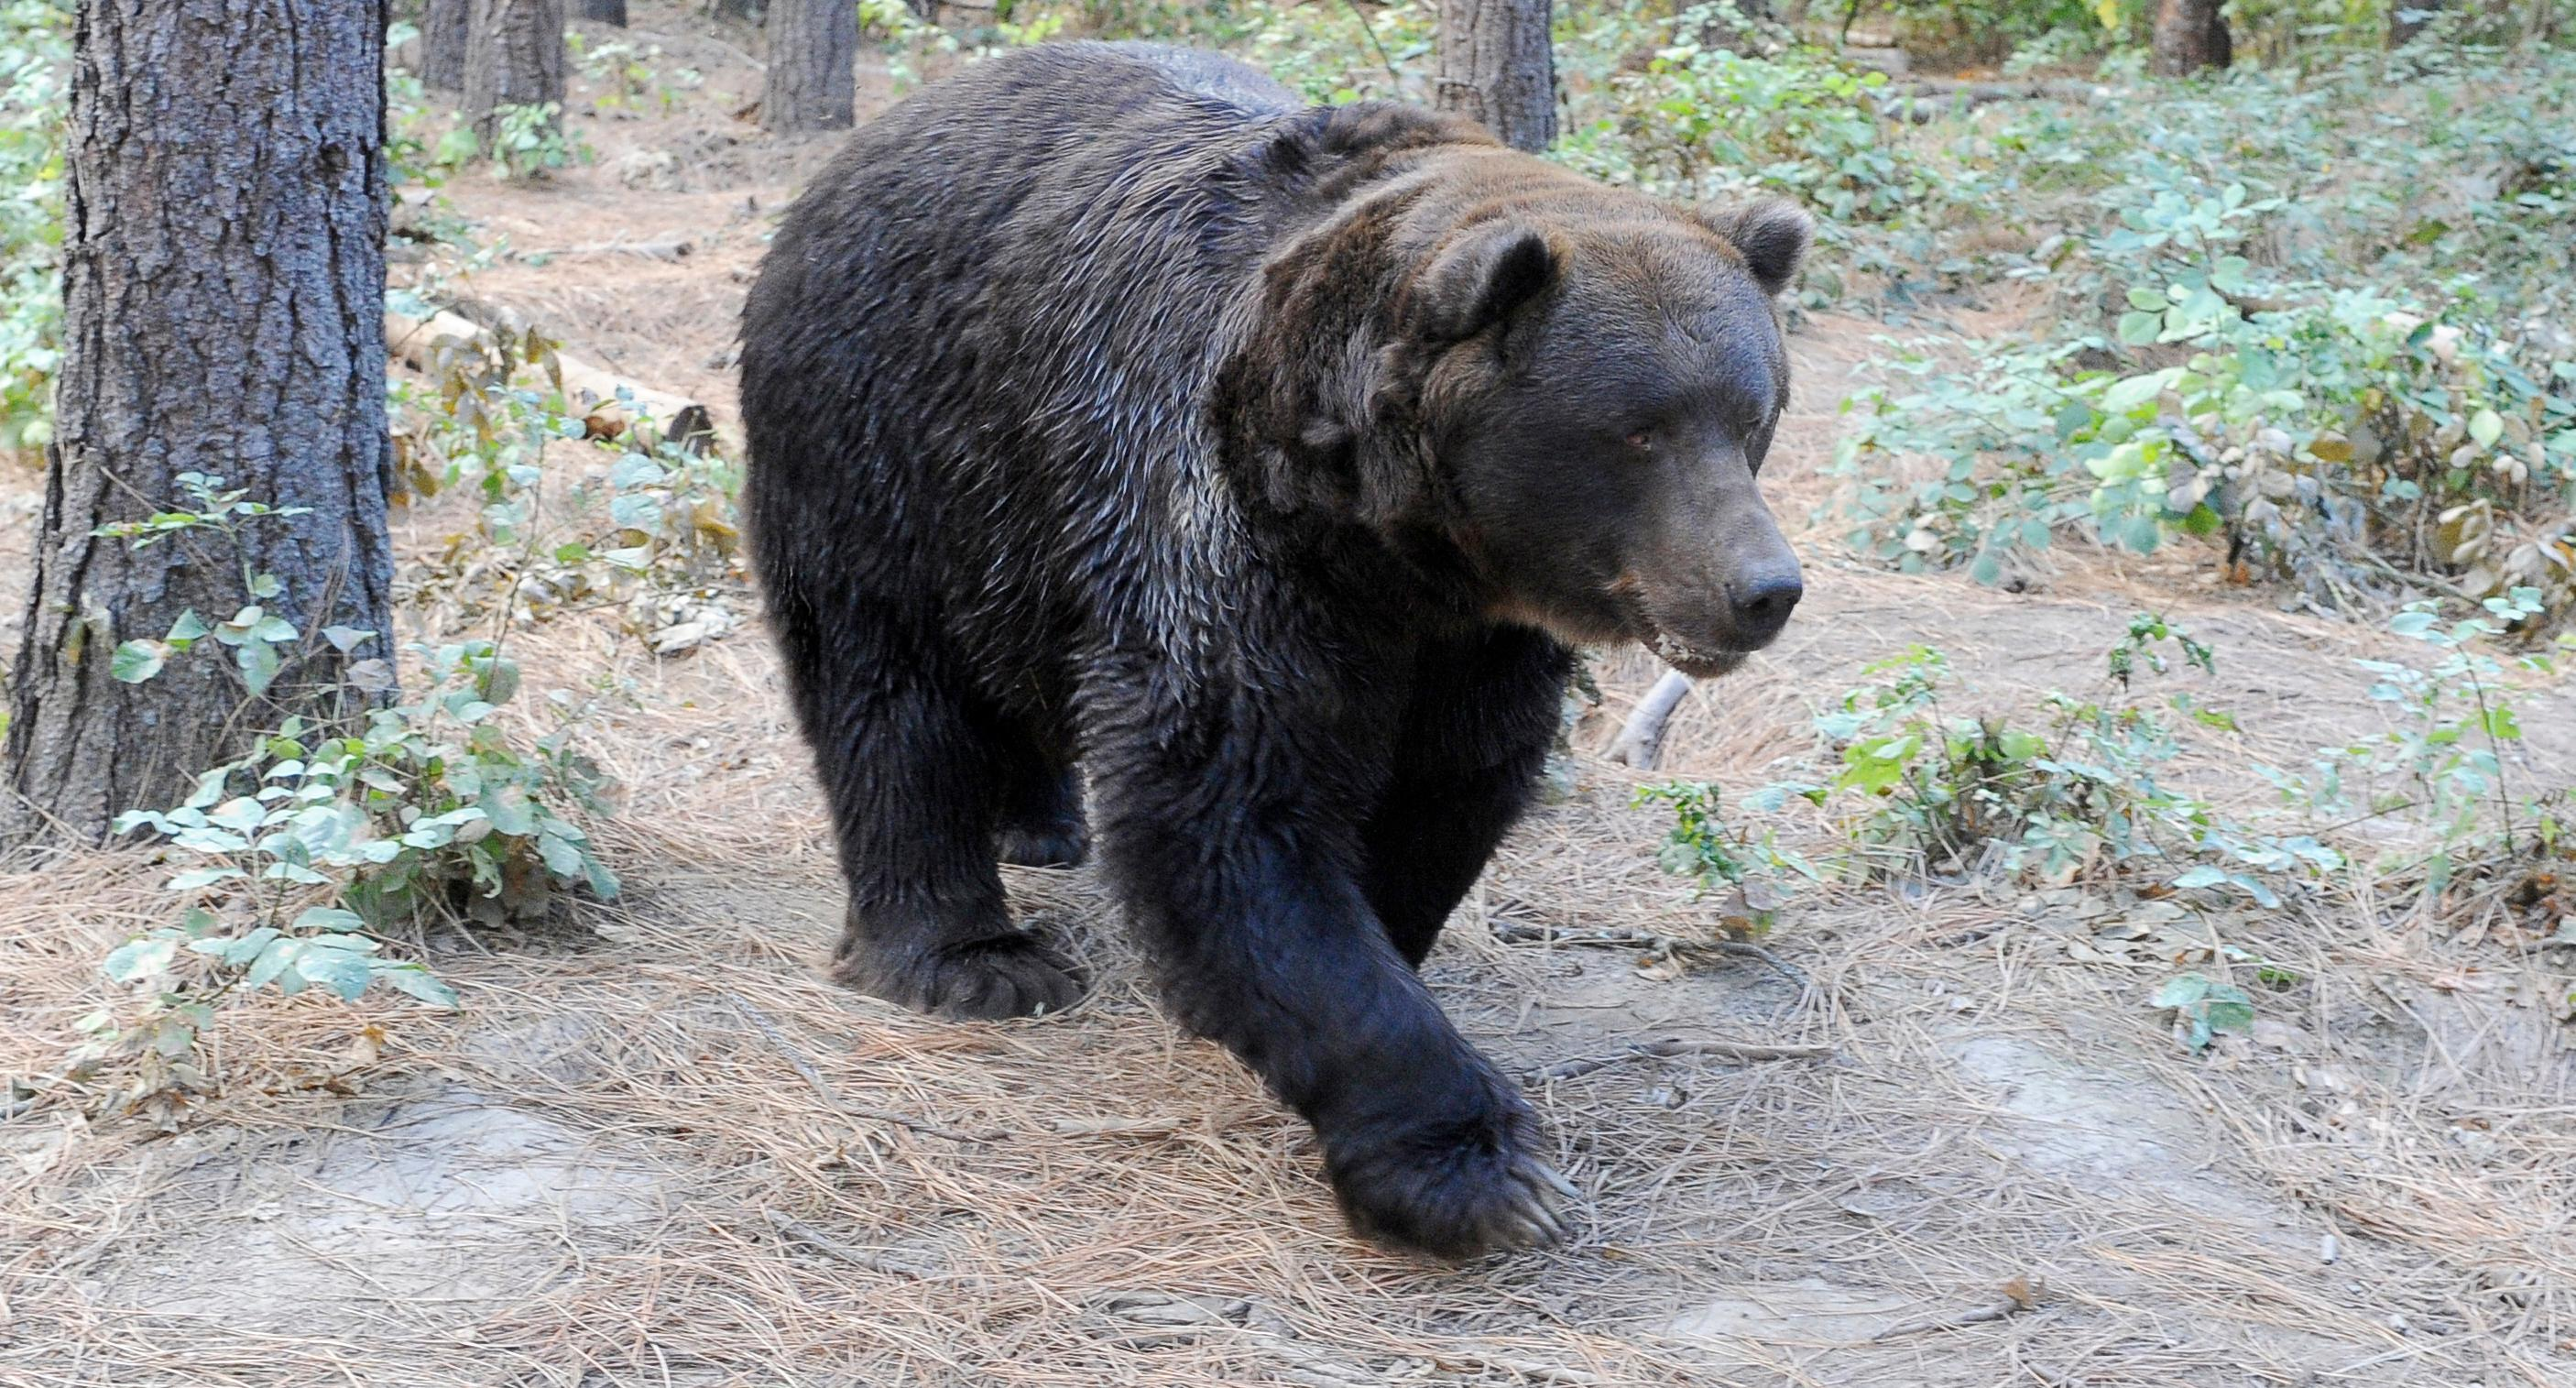 Andy Atkinson / Mail Tribune{ } Kodi the grizzly bear walks through his yard at Wildlife Images.